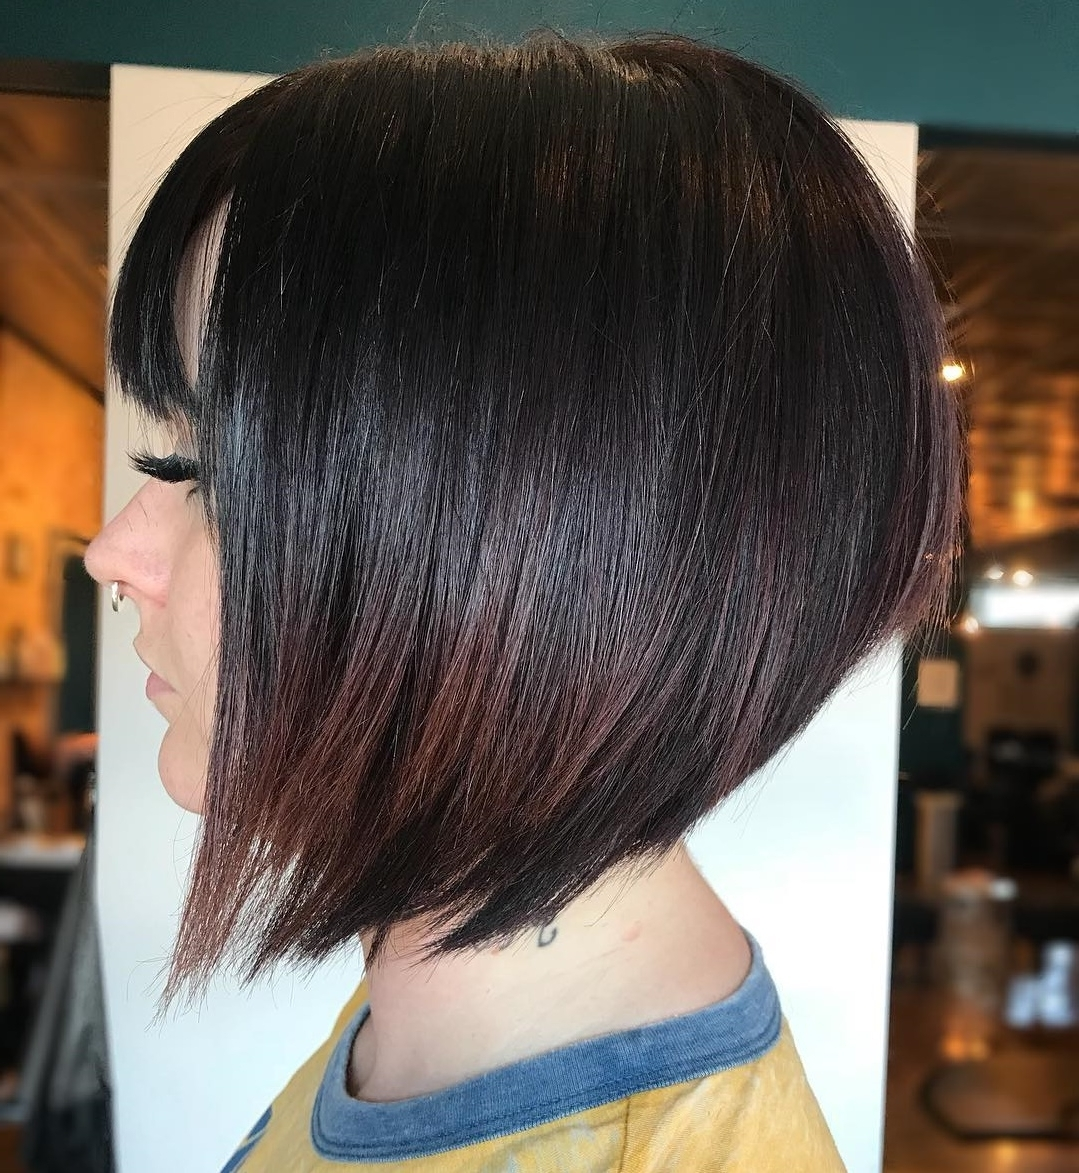 45 Short Hairstyles For Fine Hair Worth Trying In 2020 20+ Amazing Medium Length Bob Hairstyles For Fine Black Hair